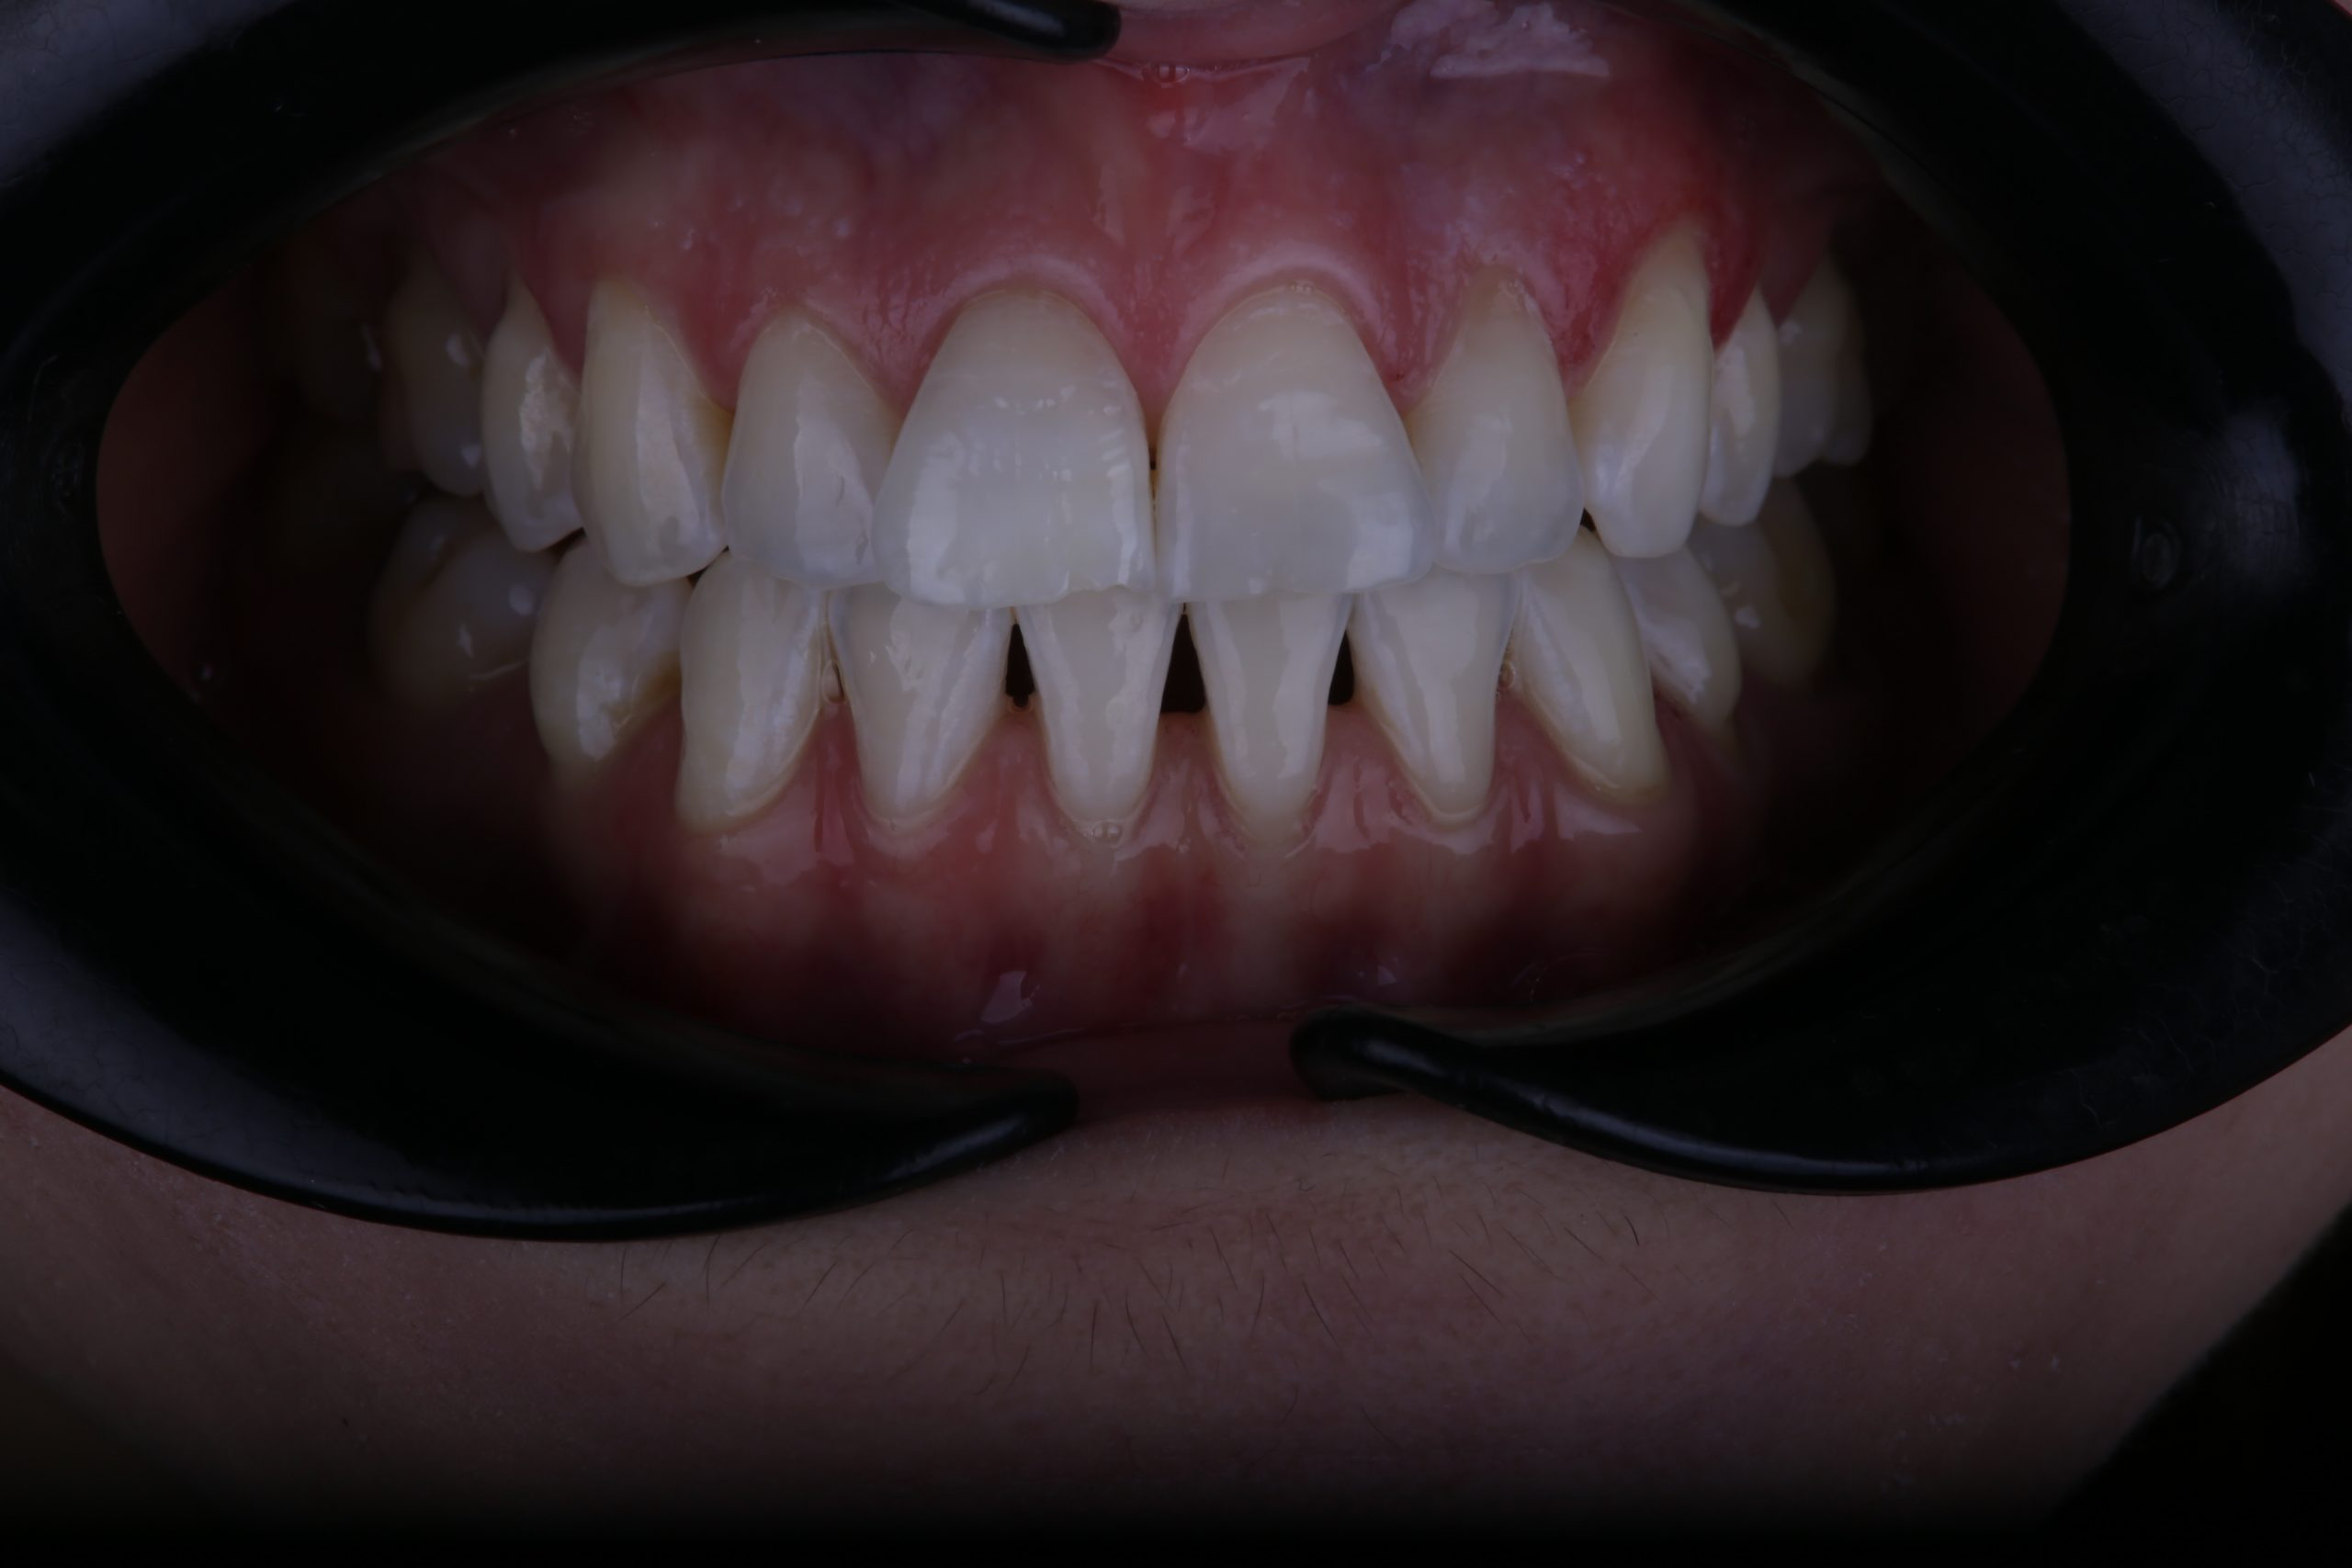 after 10 days of home whitening